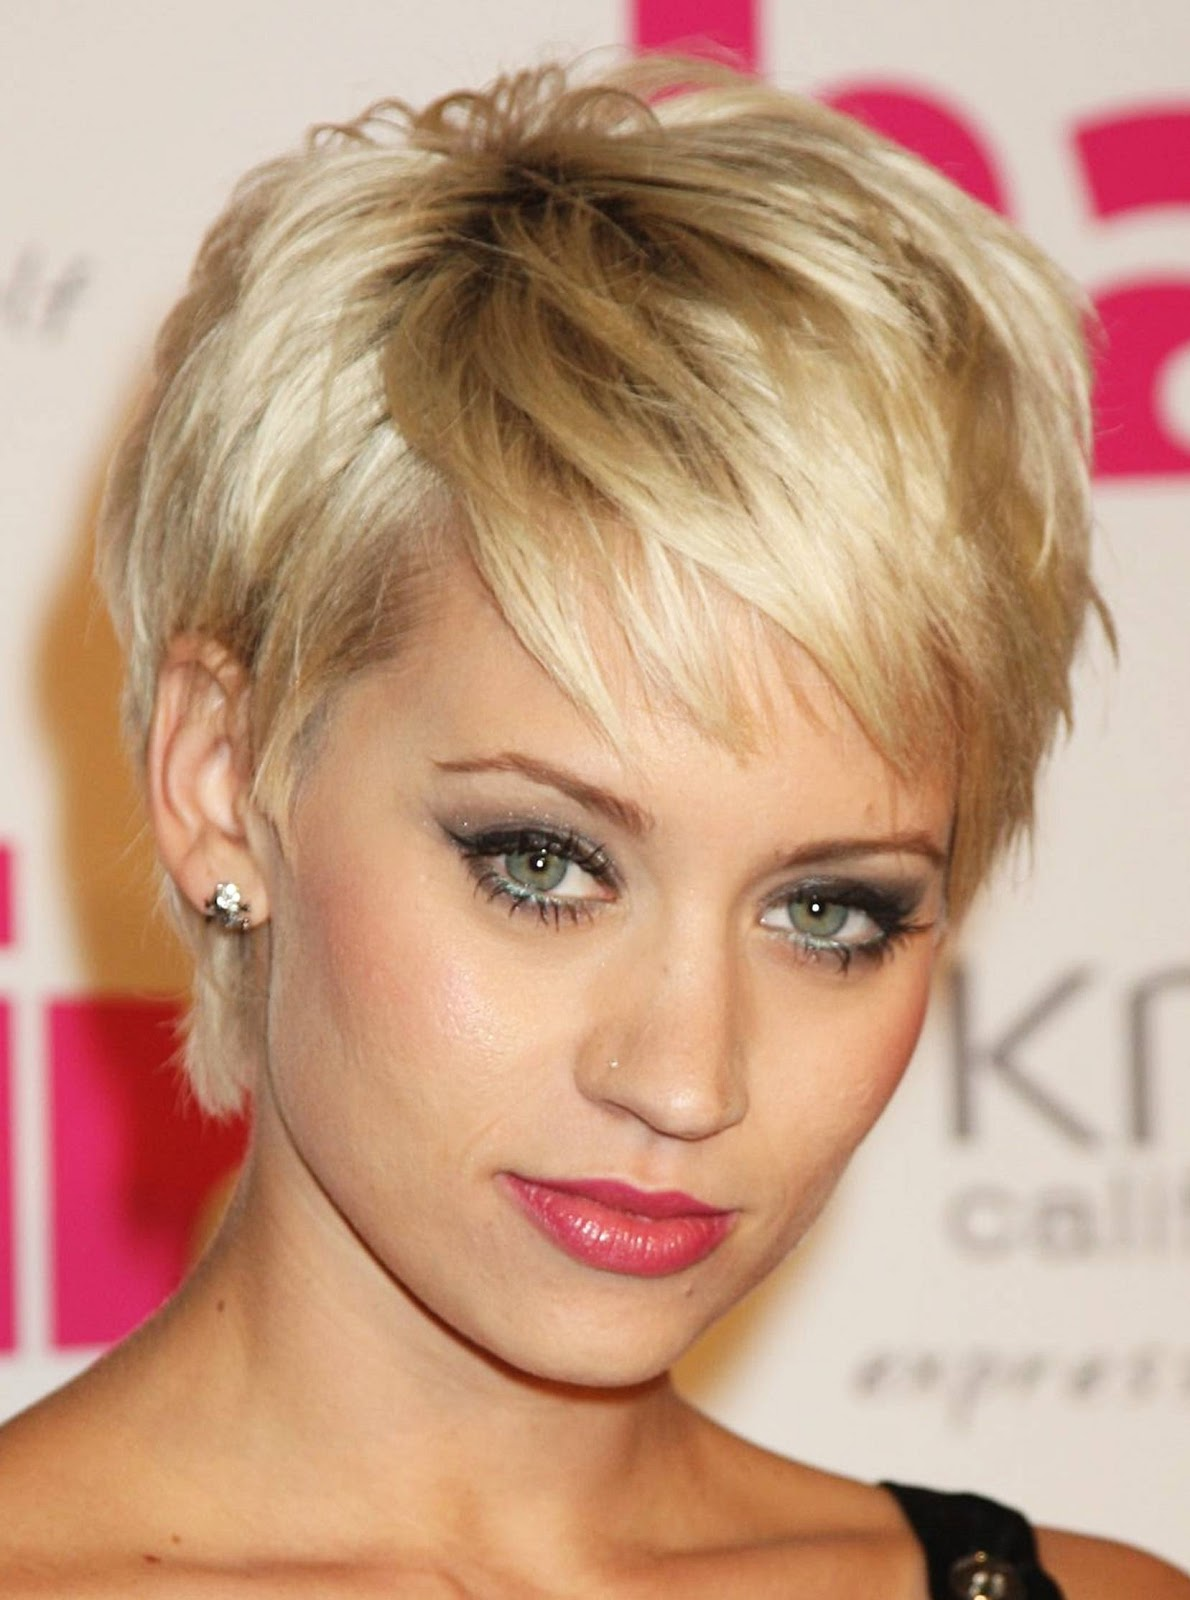 ideas for short hair styles for women the most common